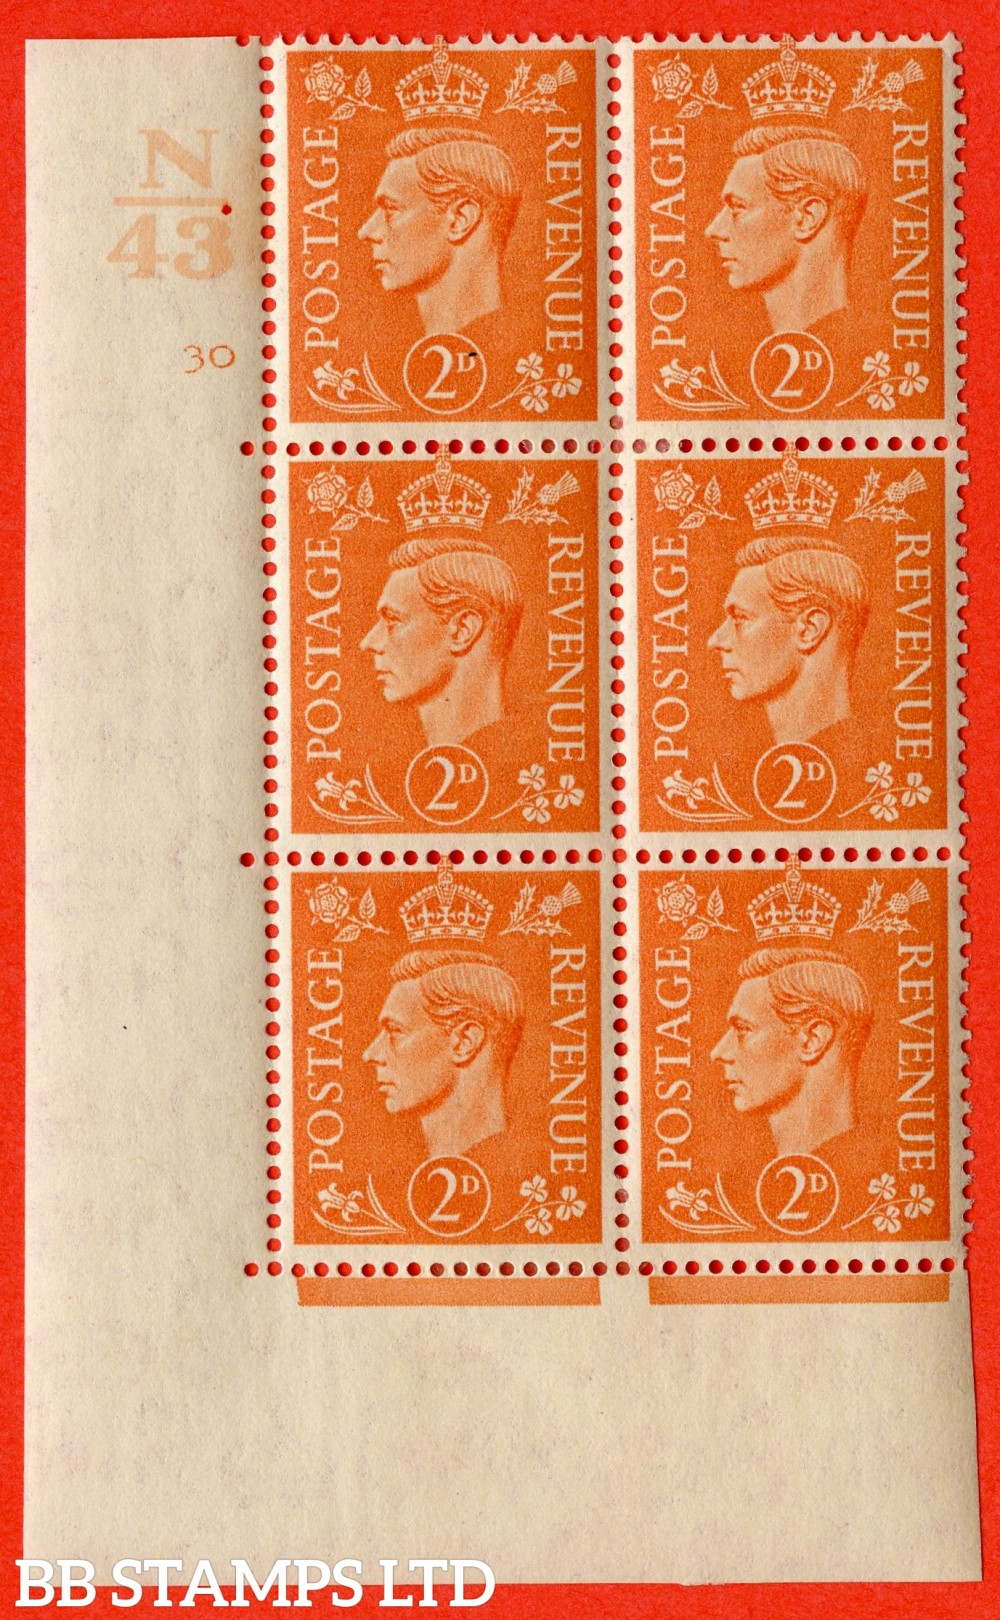 "SG. 488. Q11. 2d Pale Orange. A fine ligthtly mounted mint "" Control N43 cylinder 30 no dot "" control block of 6 with perf type 5 E/I."